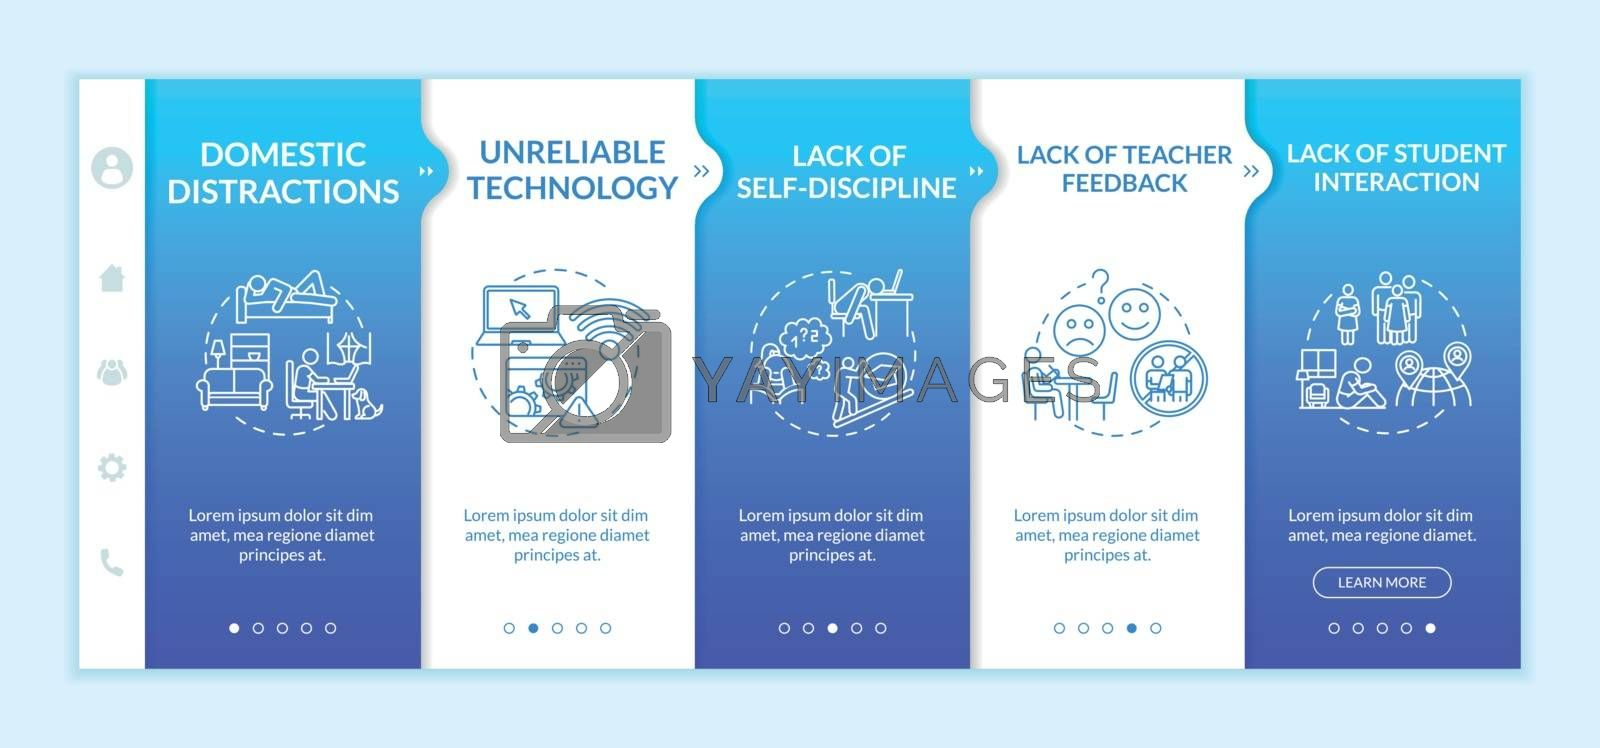 Distance learning cons onboarding vector template. Correspondence education. Remote learning. Responsive mobile website with icons. Webpage walkthrough step screens. RGB color concept